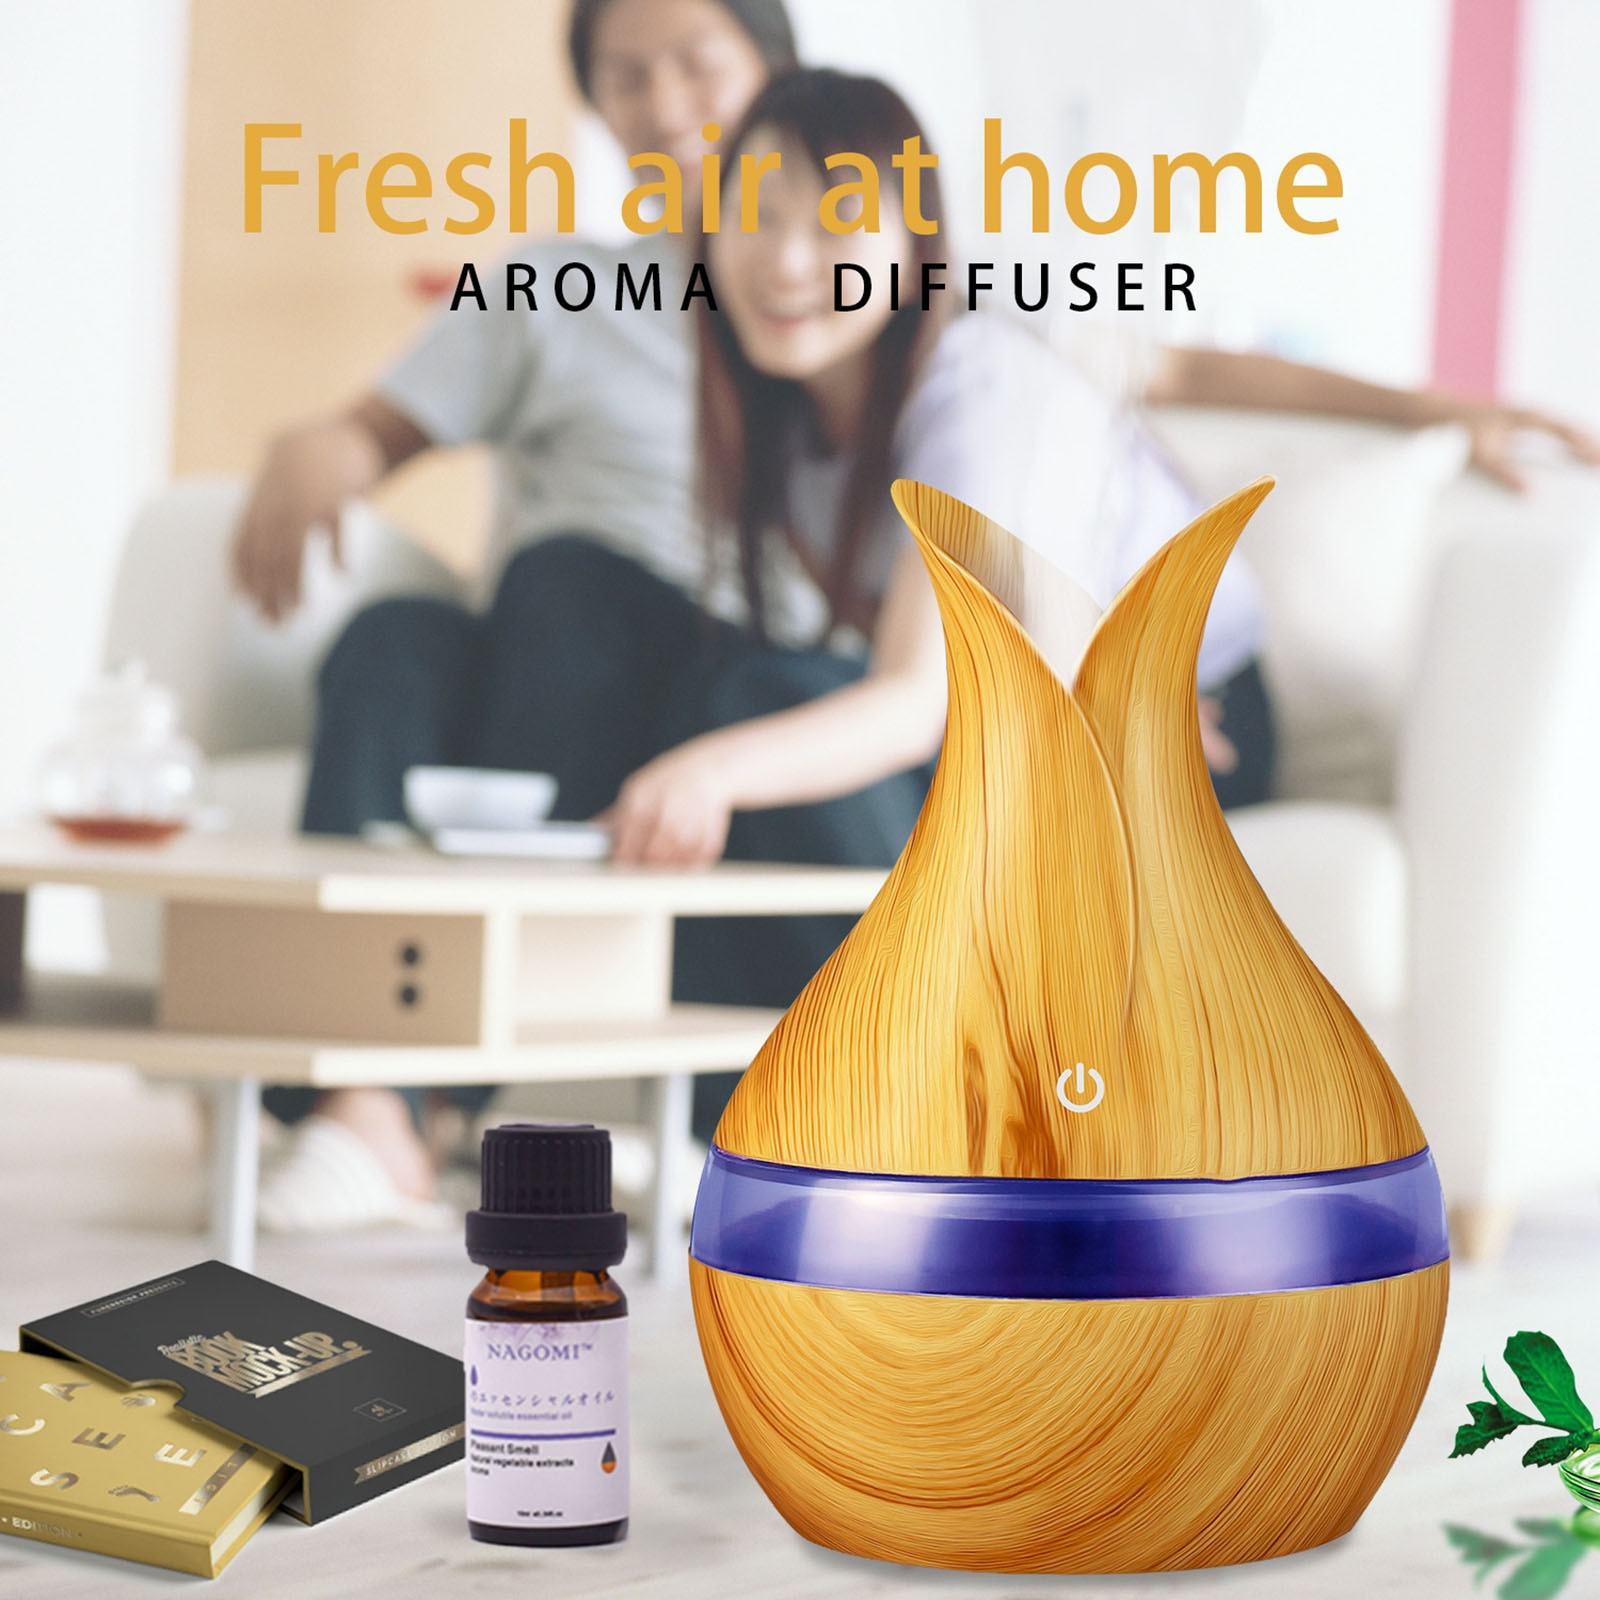 New-USB-Aroma-Diffuser-Mini-Ultrasonic-Air-Humidifier-Wood-Grain-Atomizer-Aromatherapy-Essential-Oil-Diffuser-for.jpg